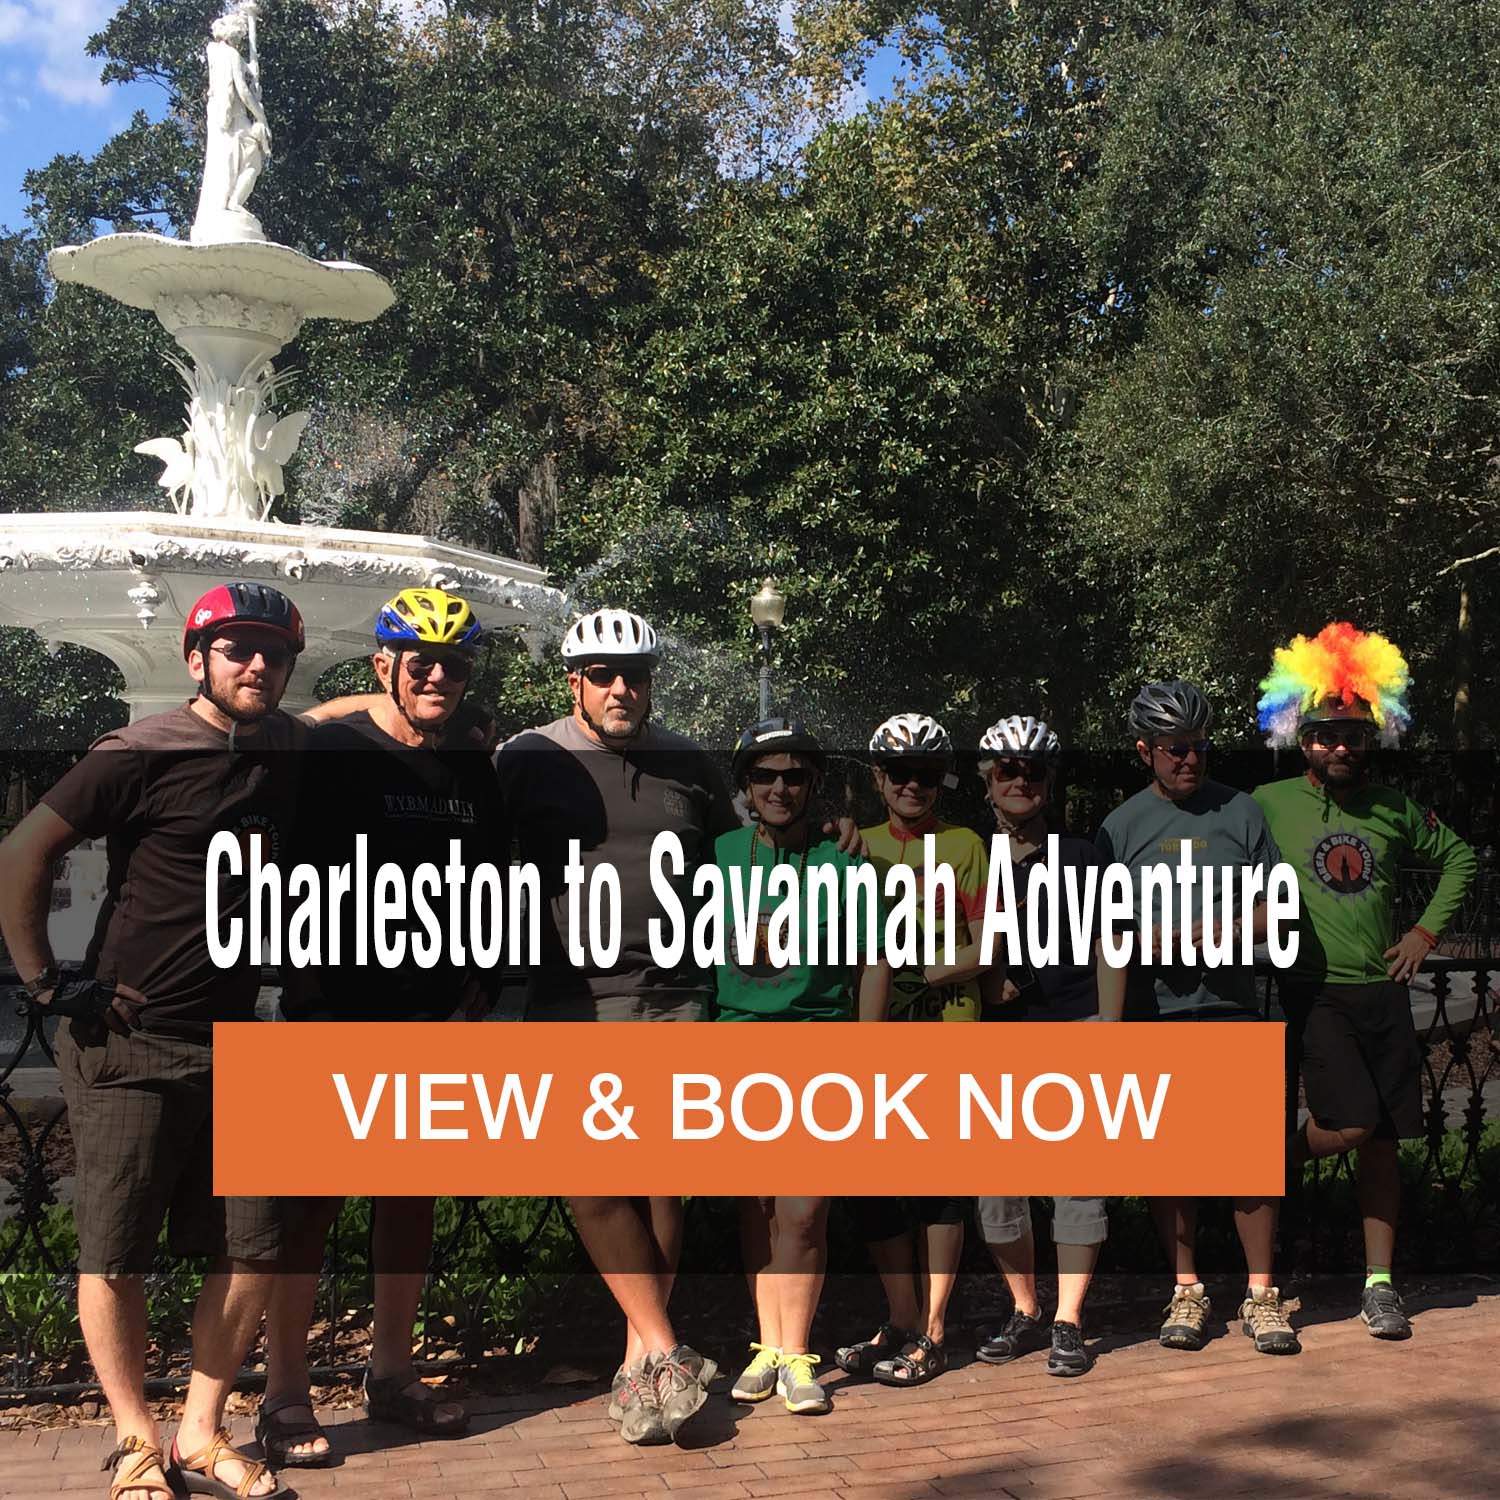 Charleston to Savannah